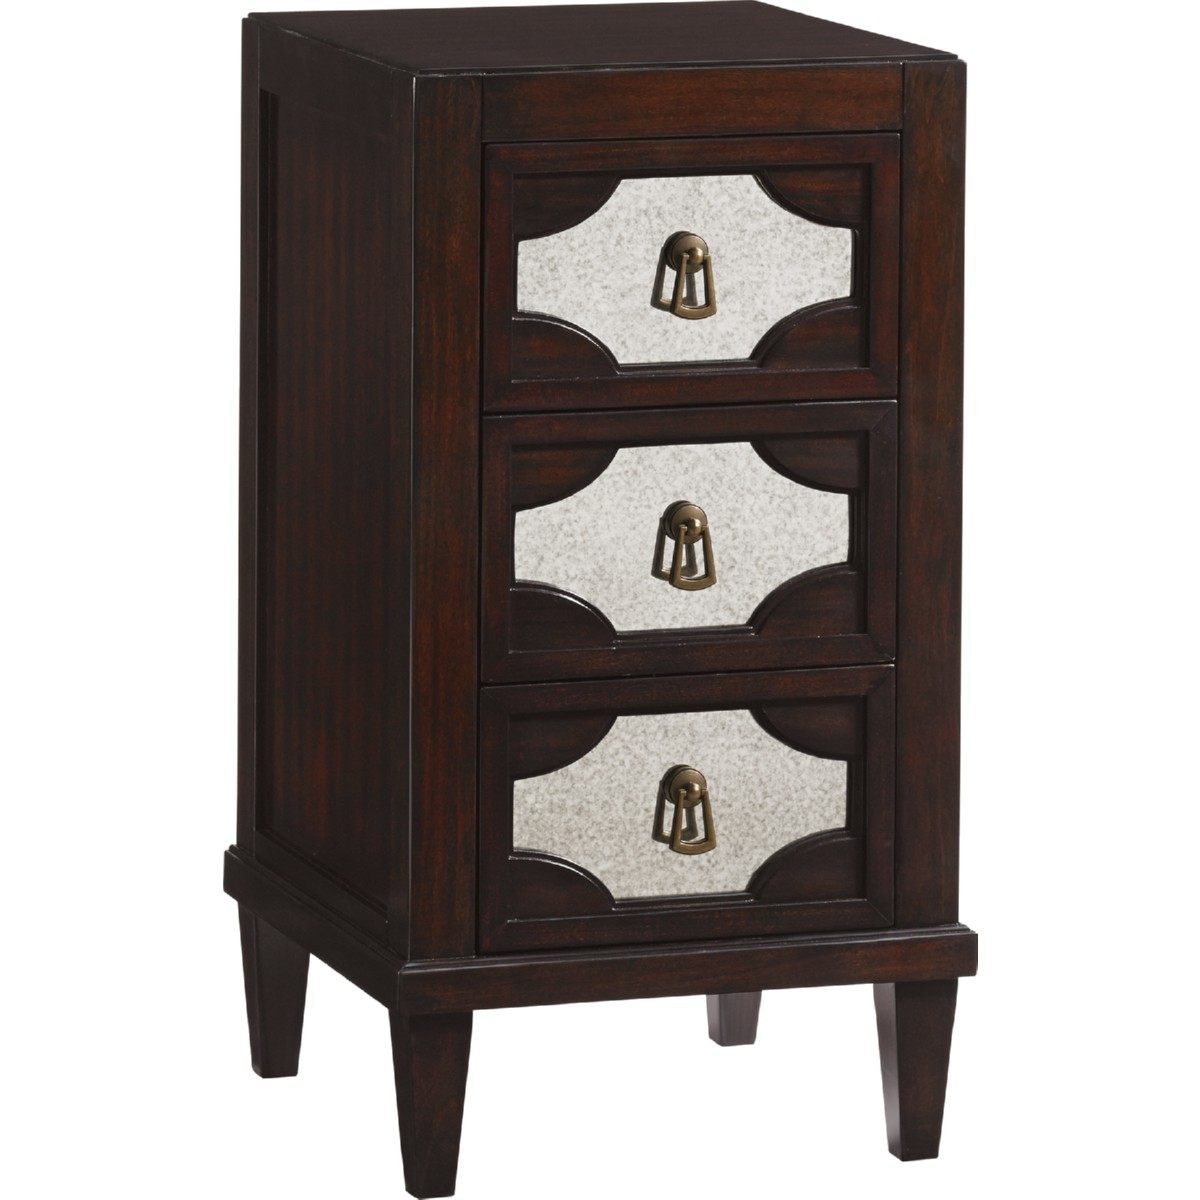 Lucerne Mirrored Nightstand In Ribbon Stripe Mahogany W Antique Mirror Fronts By Lexington Furniture